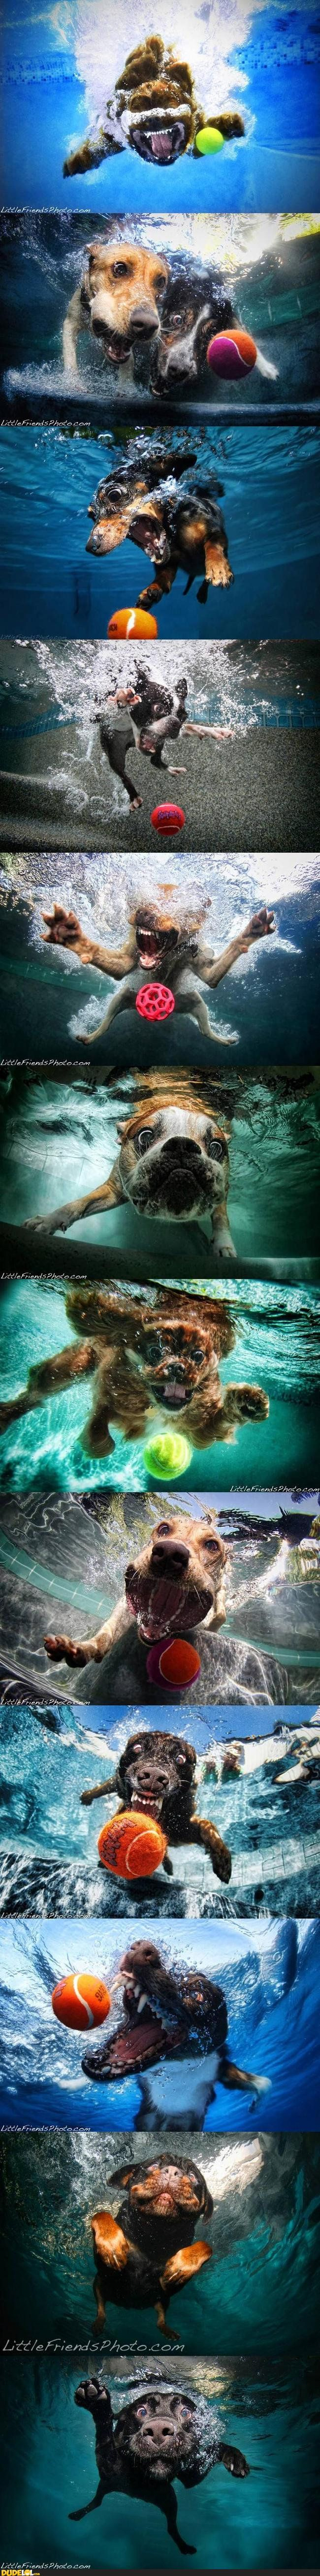 diving dog pictures